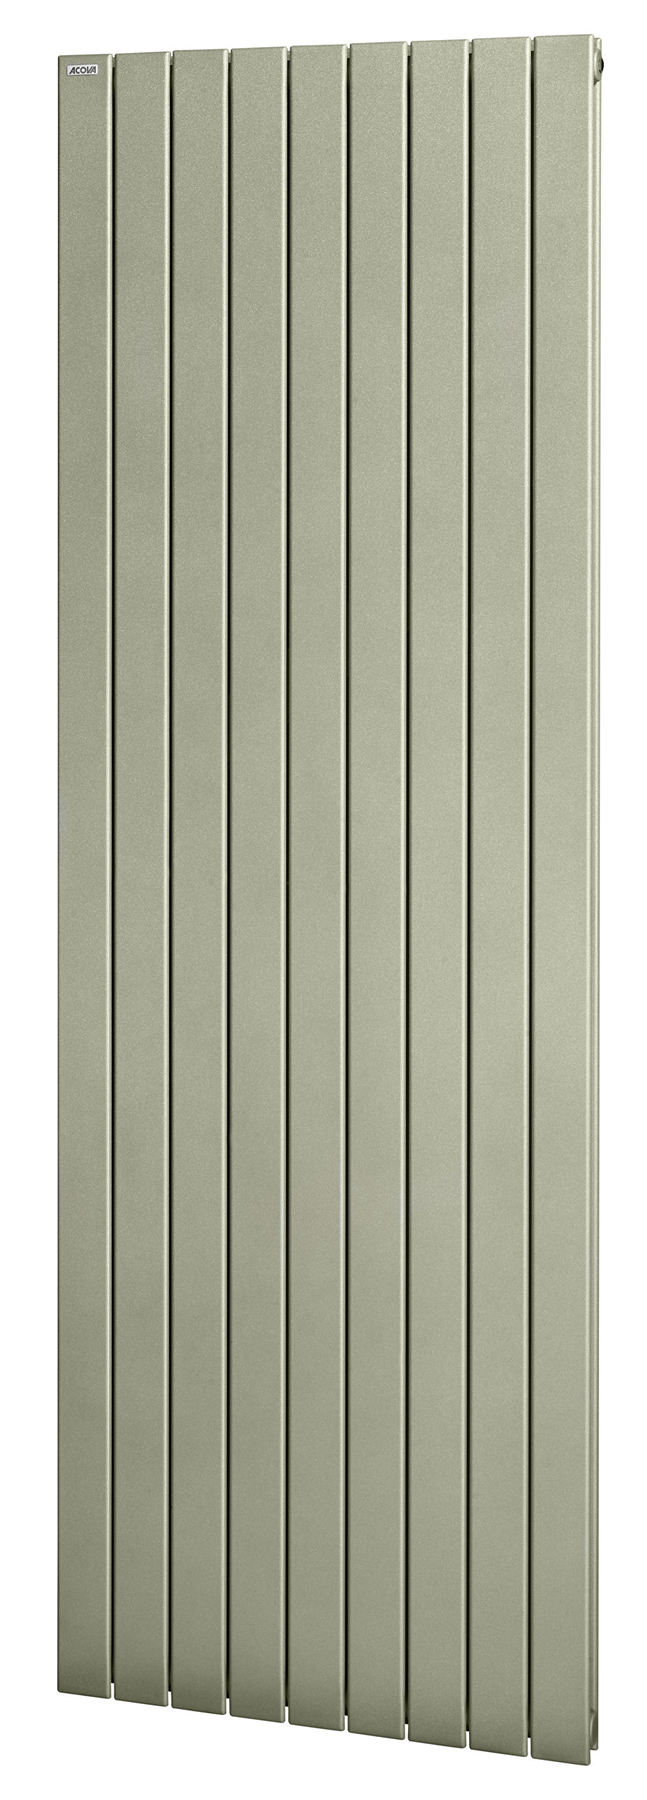 acova radiateur chauffage central fassane stock vertical vertival simple shx puissance. Black Bedroom Furniture Sets. Home Design Ideas